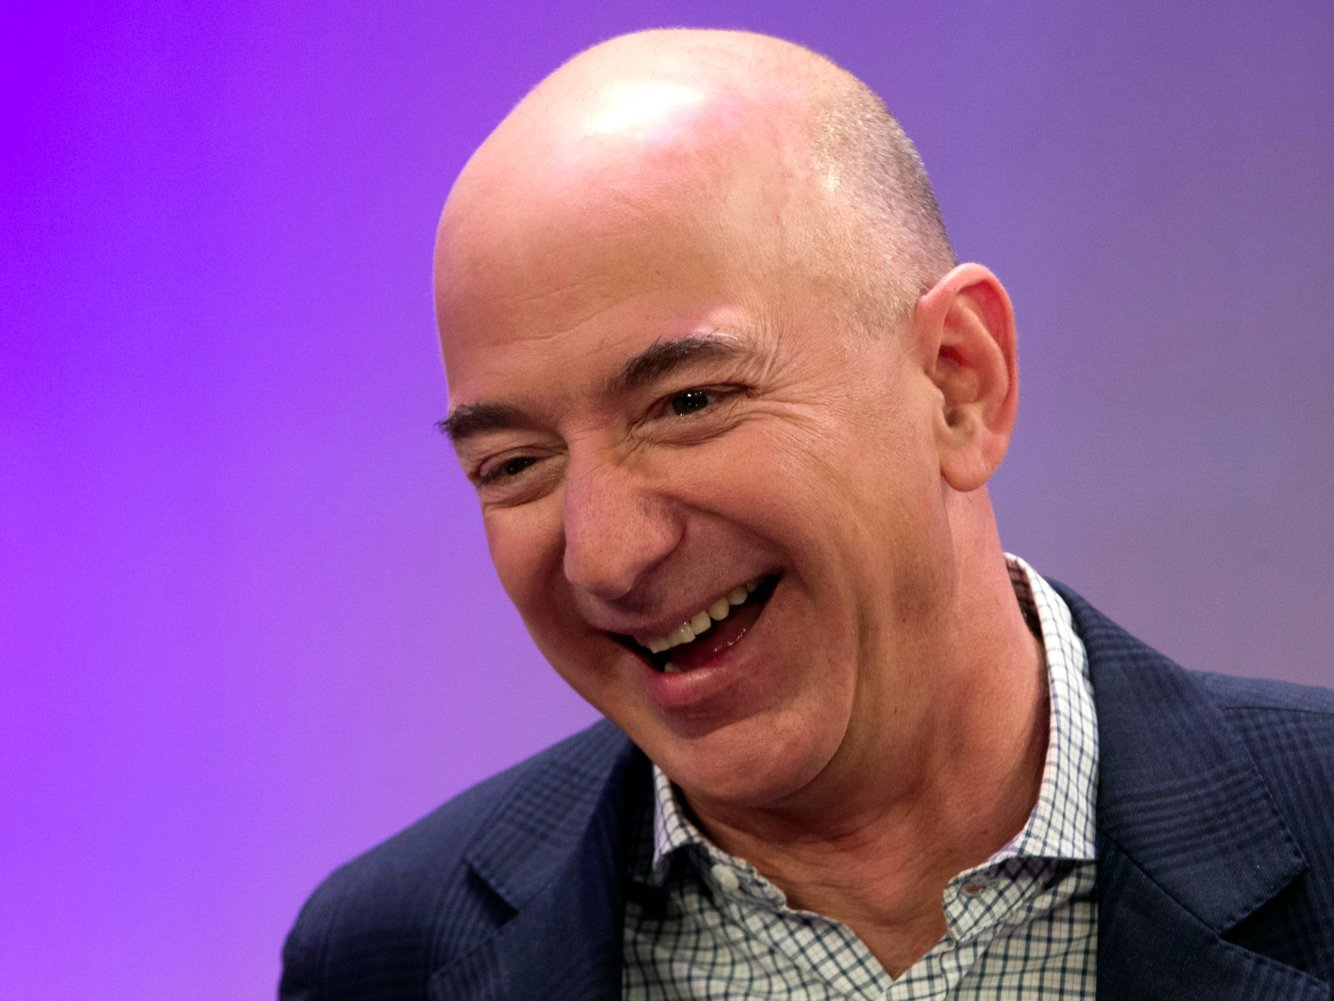 Jeff Bezos and his early Amazon employees used desks made out of recycled doors, and the reason behind it helps explain why Amazon became so successful